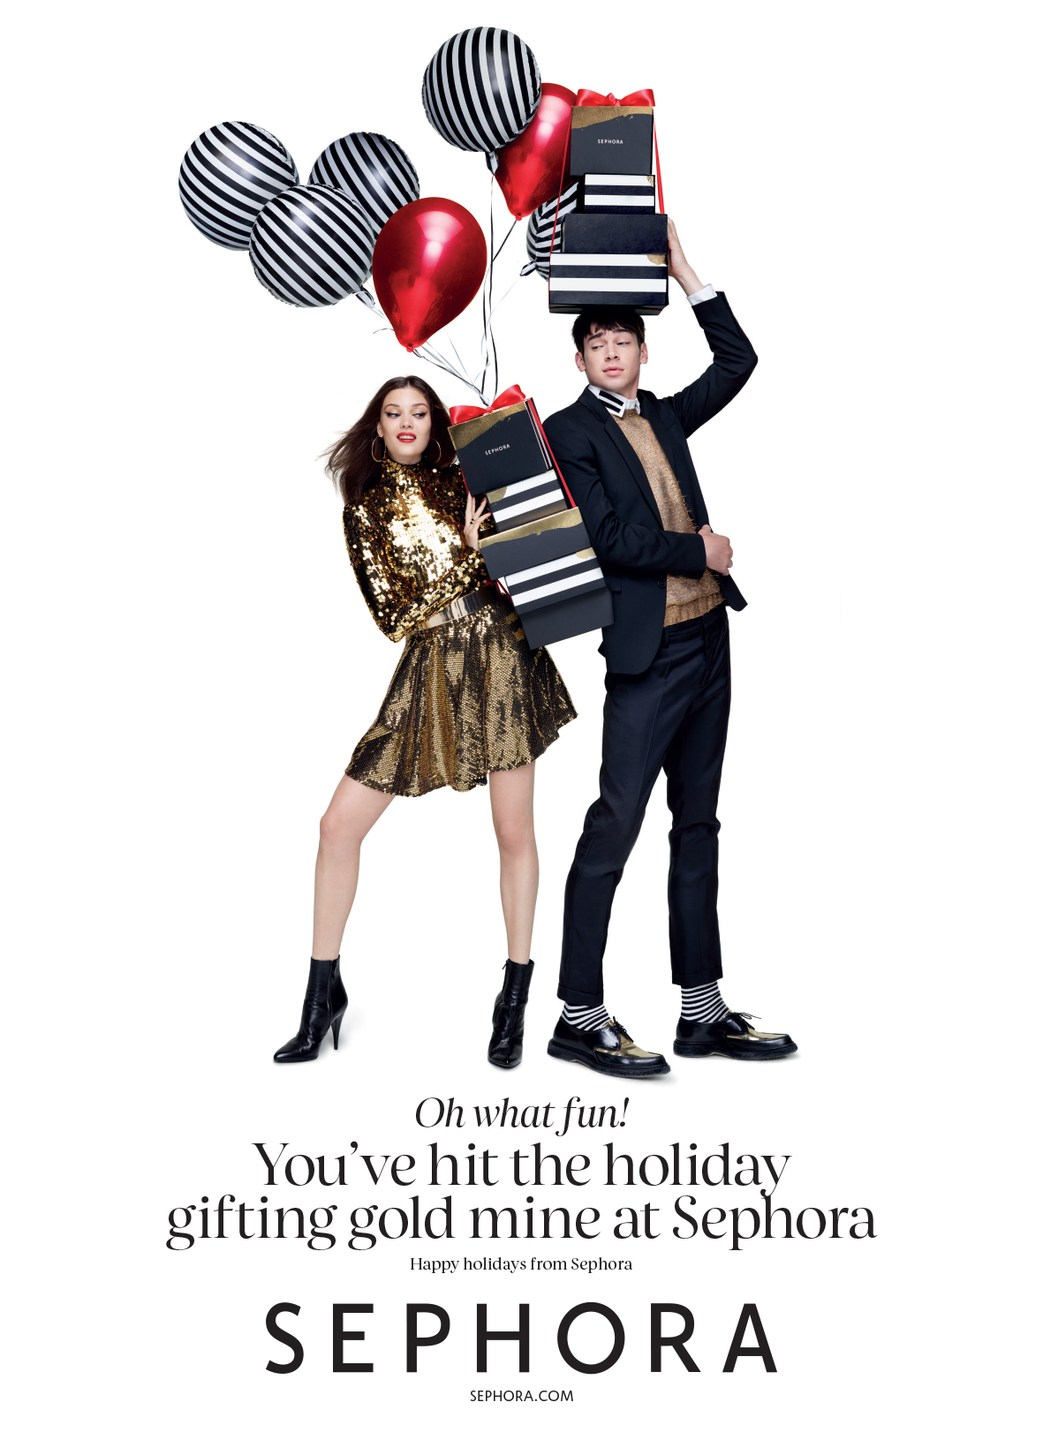 Sephora Celebrates the Holidays with Cole Mohr & Isaac Carew